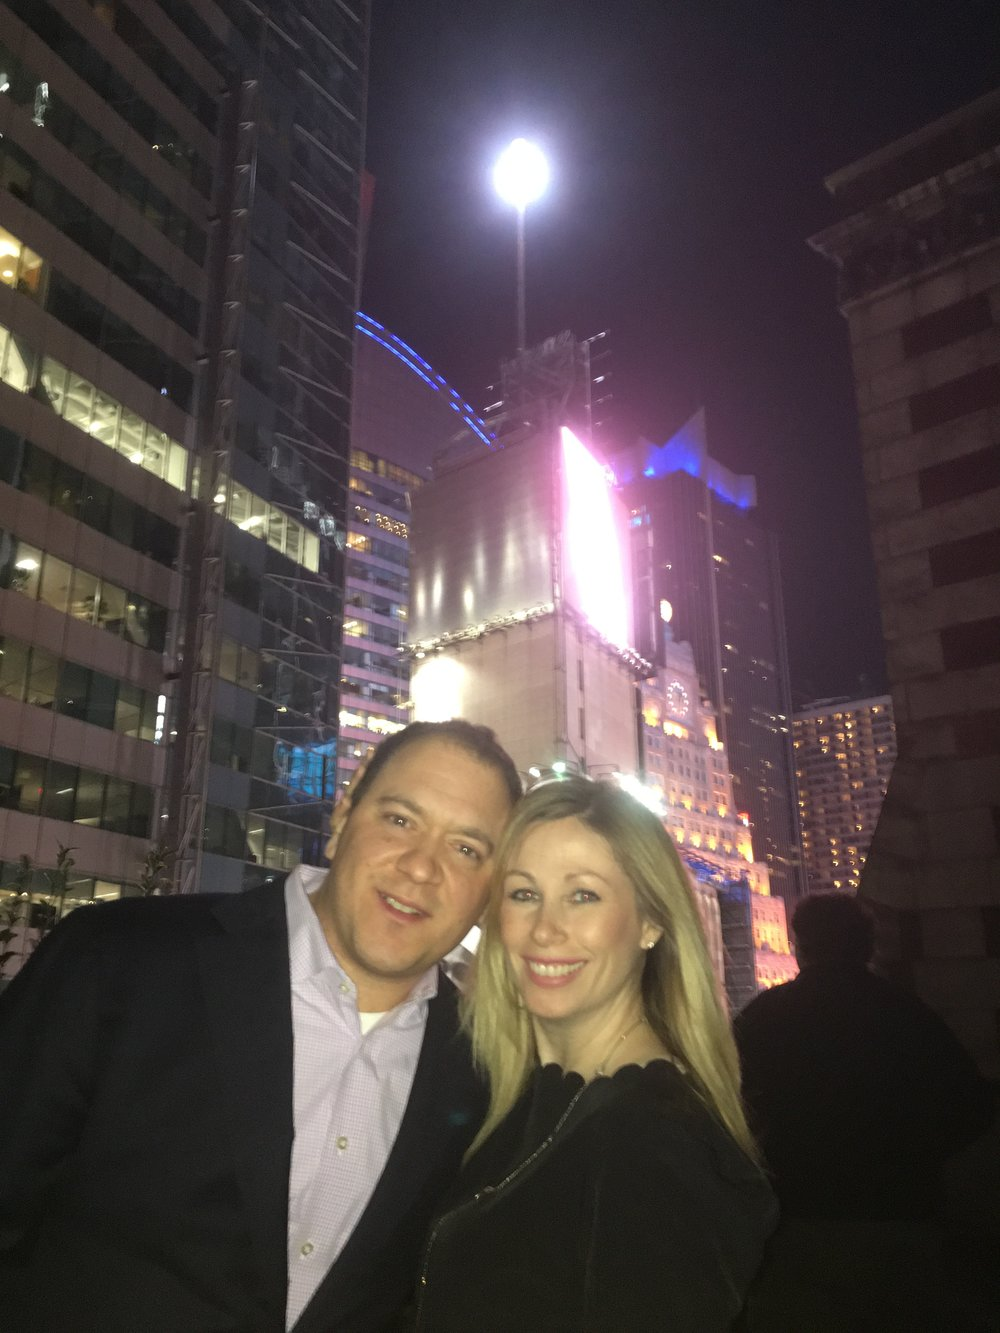 Times Square Ball in the background!